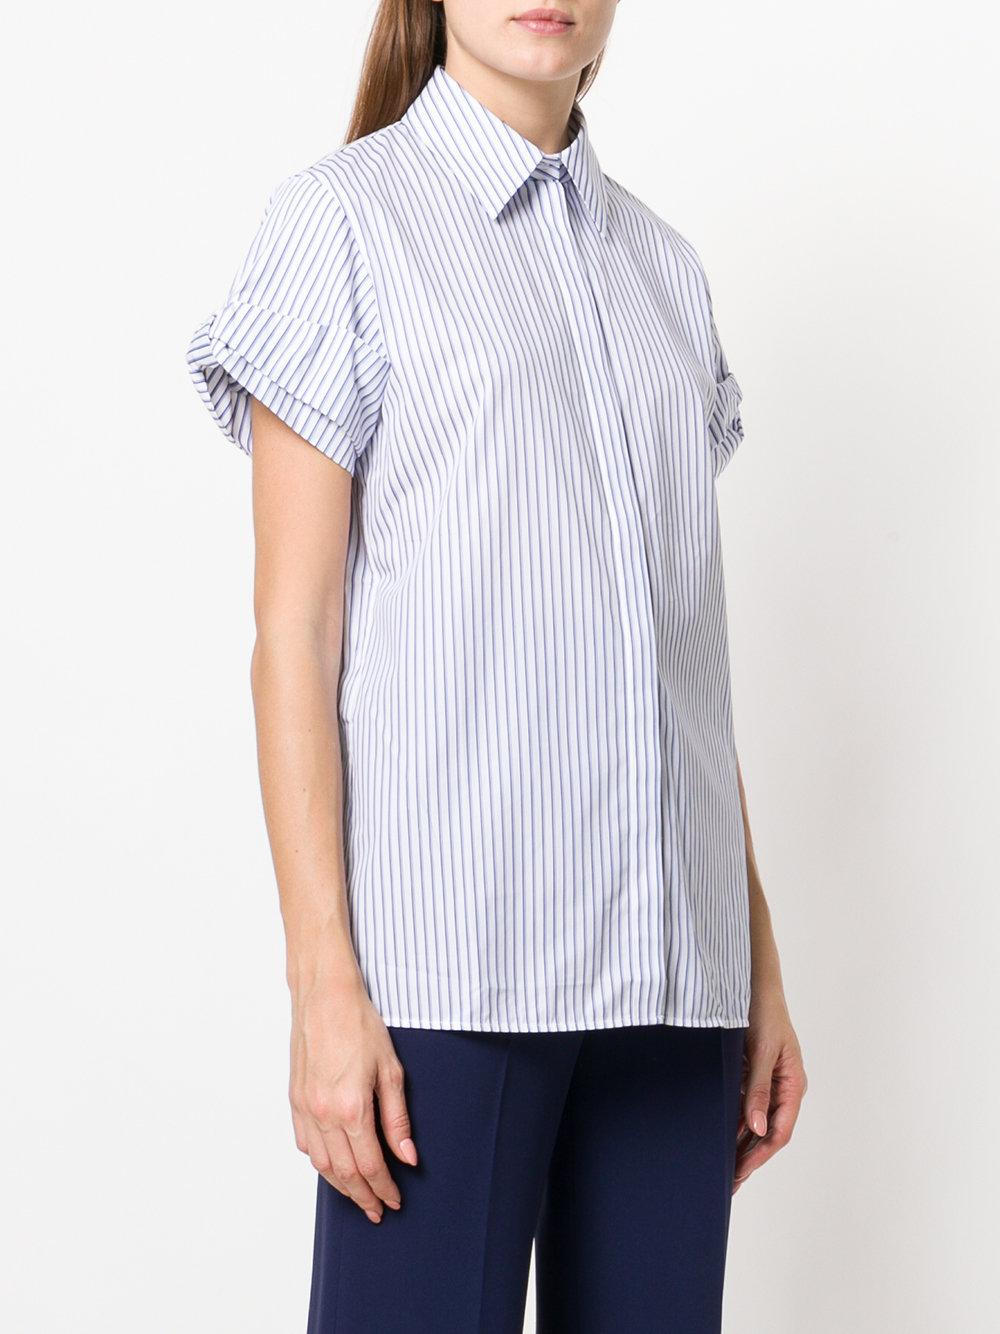 Buy Cheap 2018 Victoria Victoria Beckham layered shortsleeved shirt Shopping Online With Mastercard Cheap Clearance 5erYrn